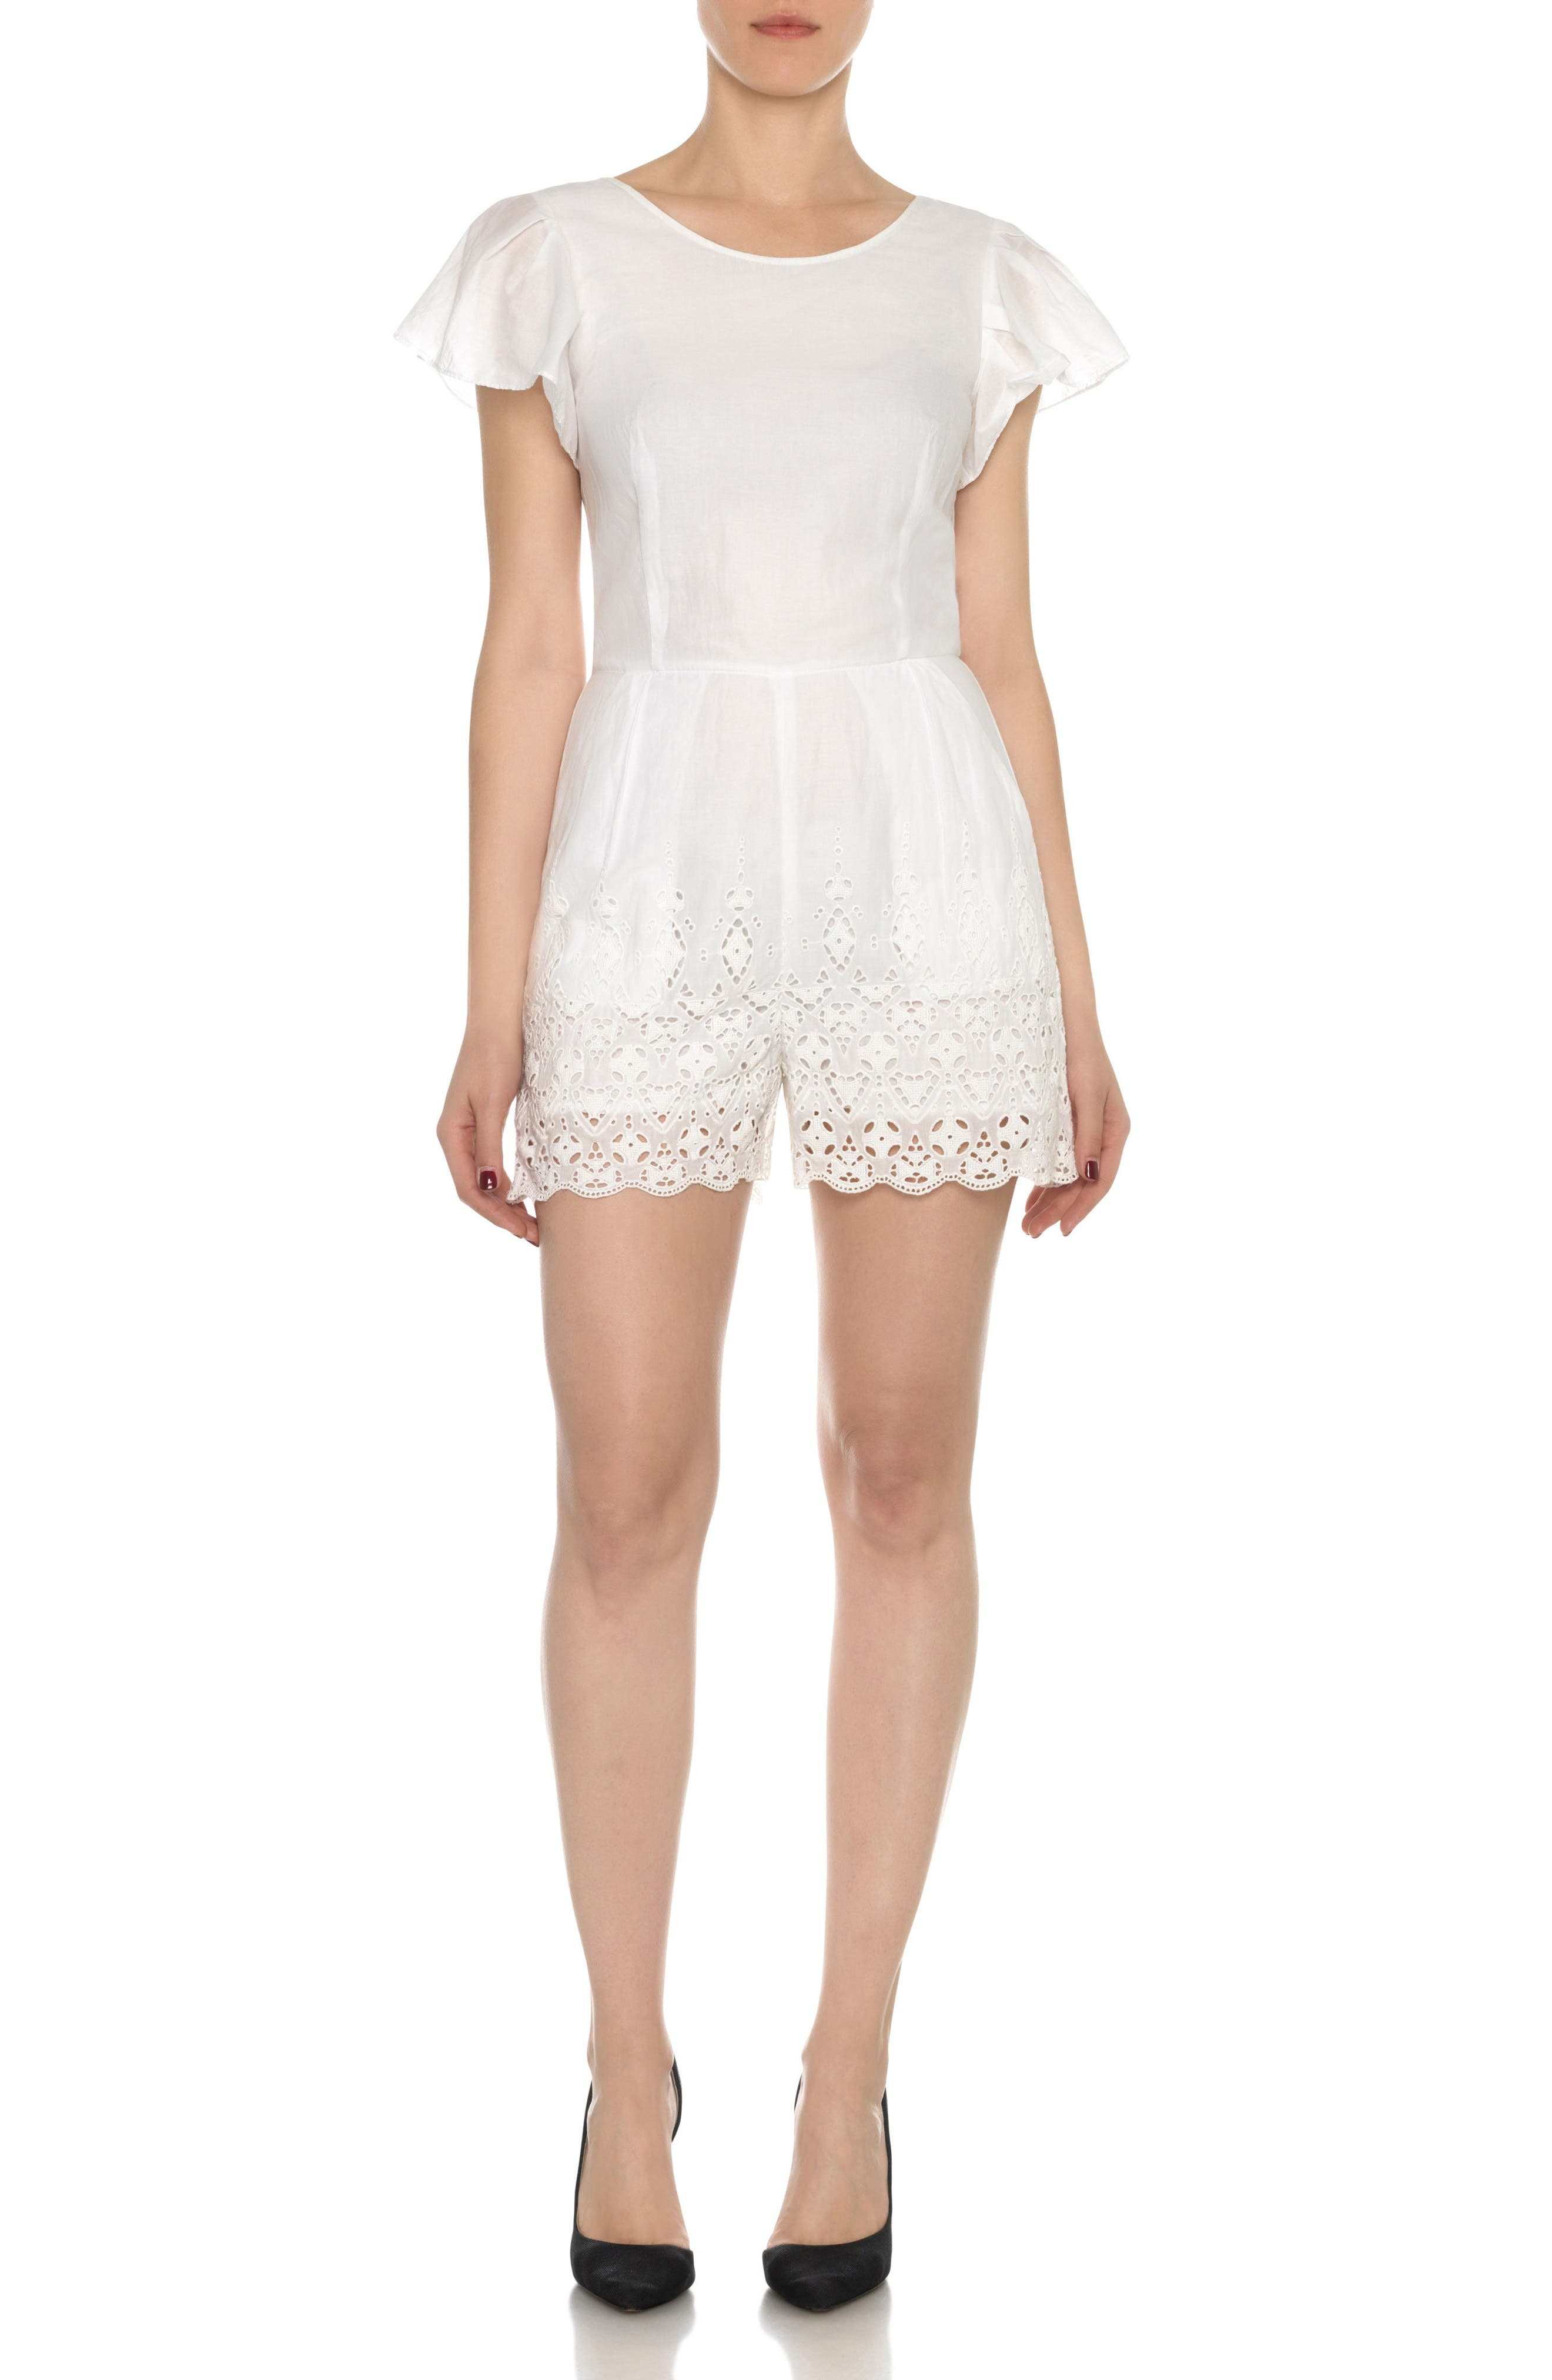 Joe's Vienna Cotton Romper